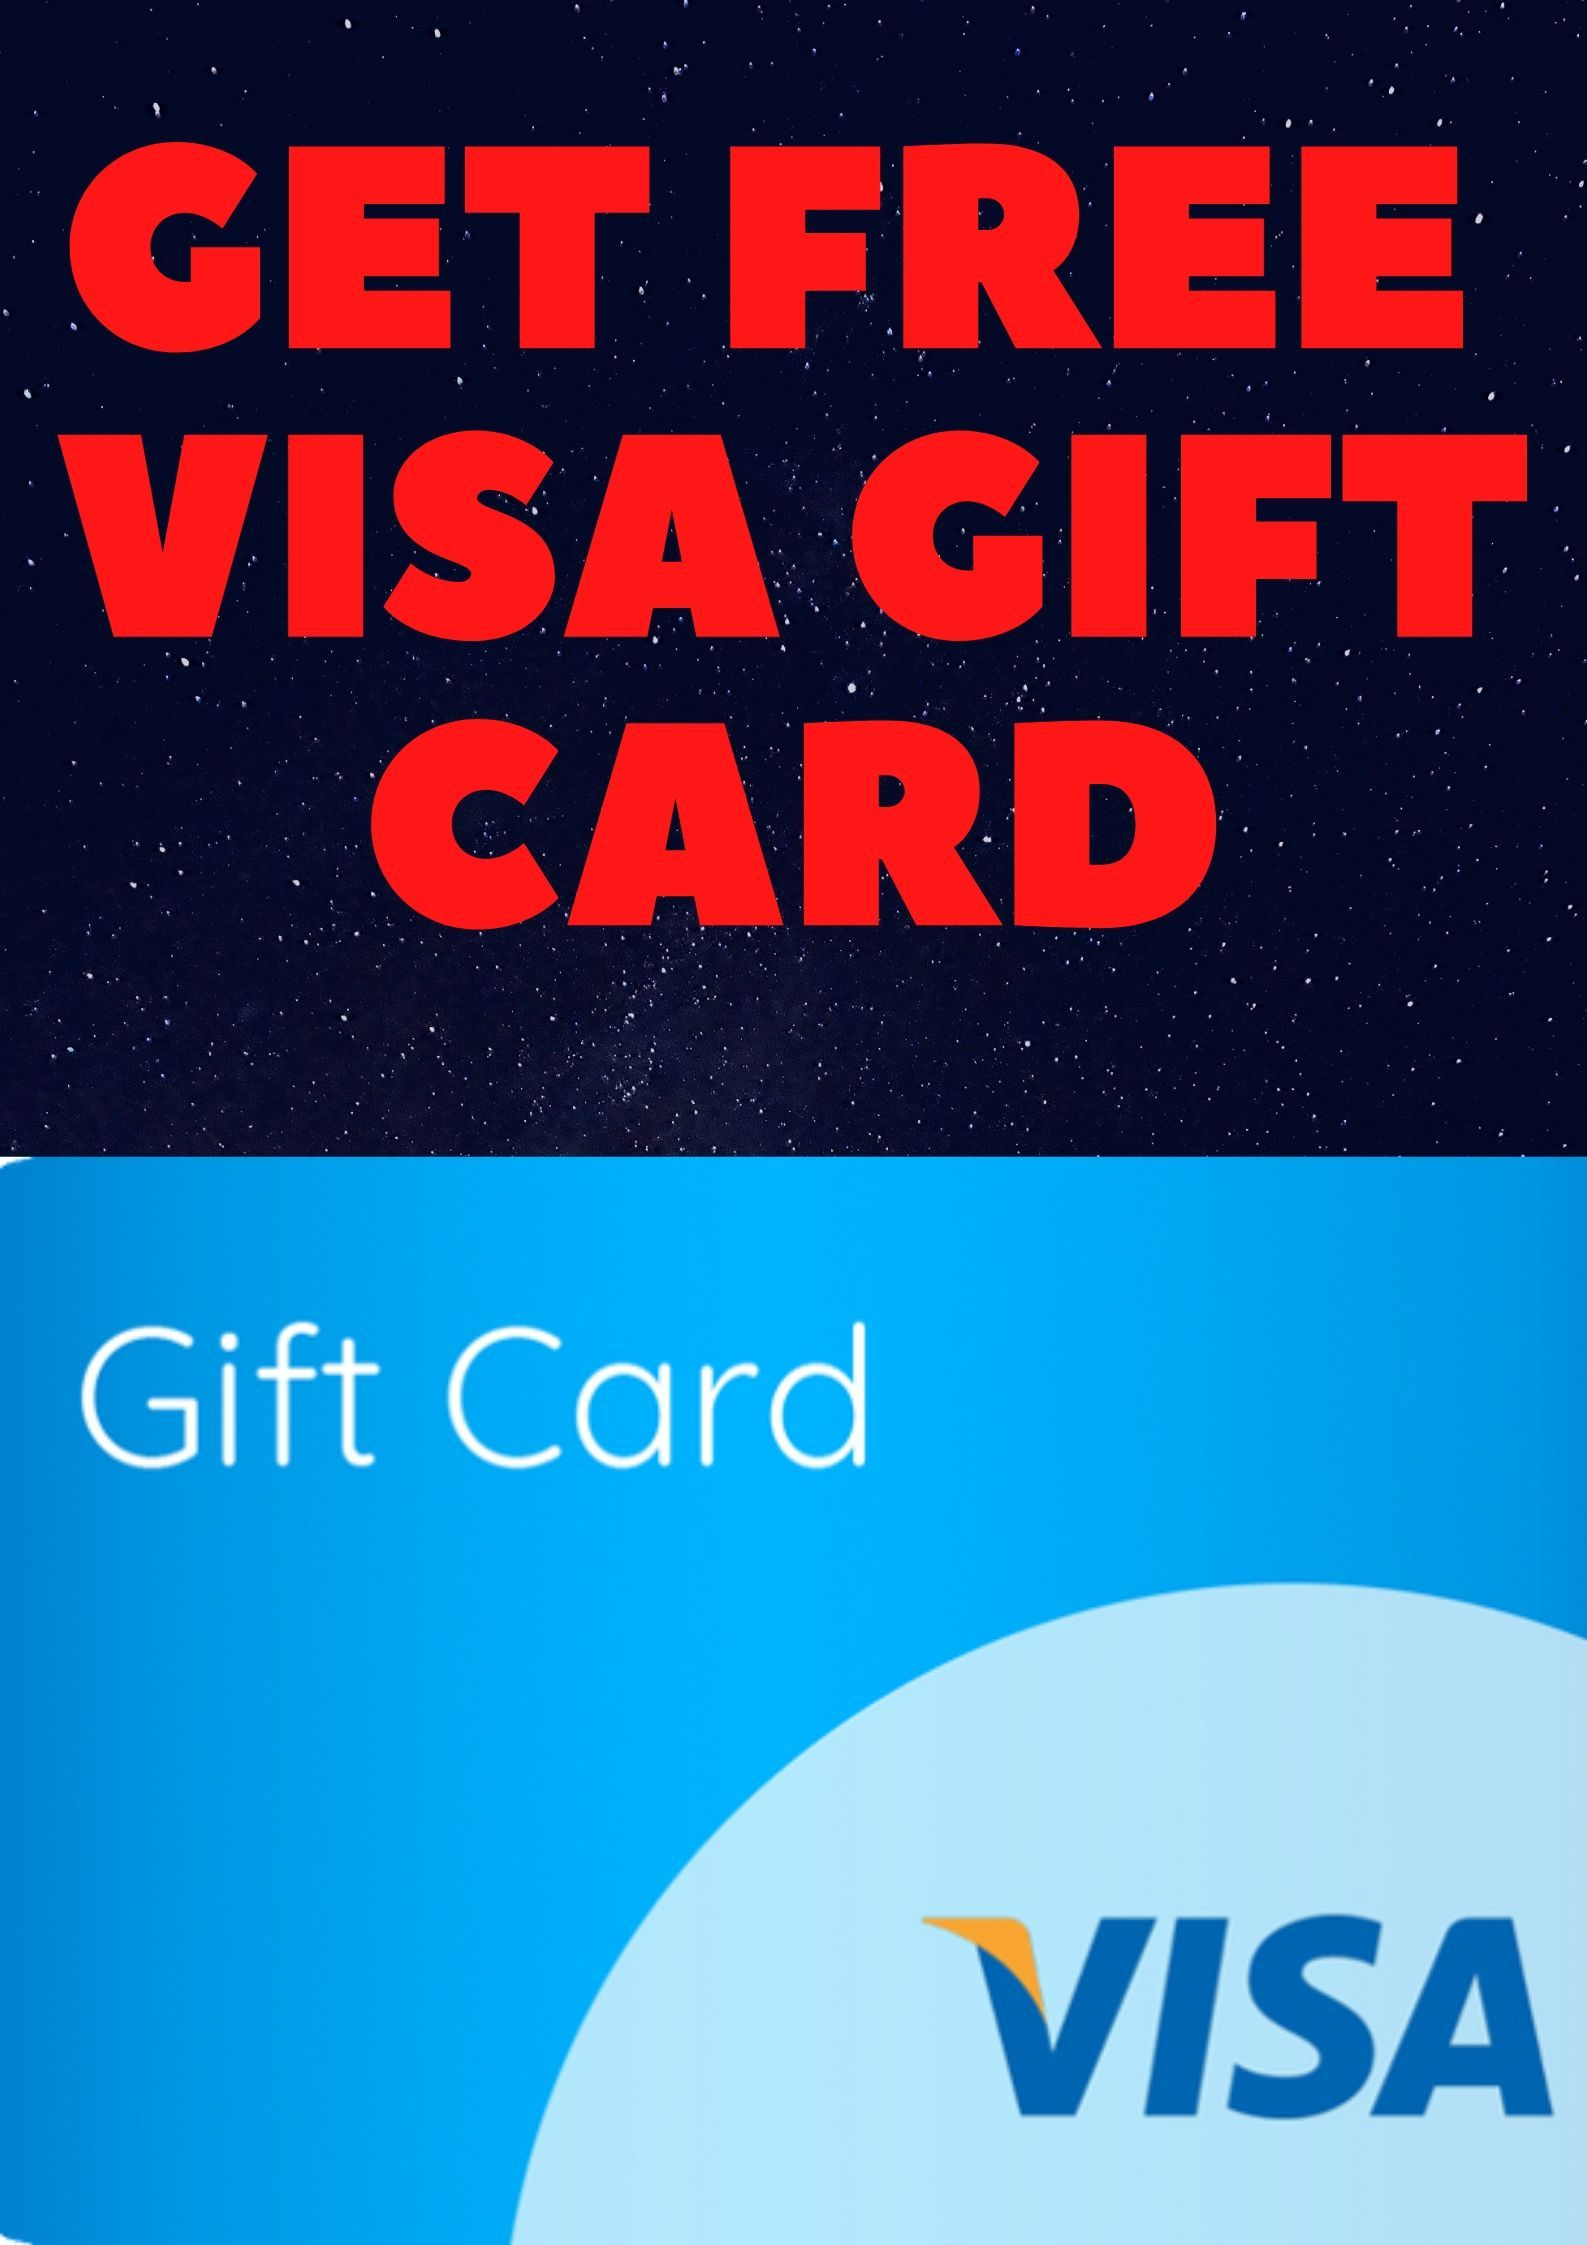 Visa gift card is very popular gift card in the world so